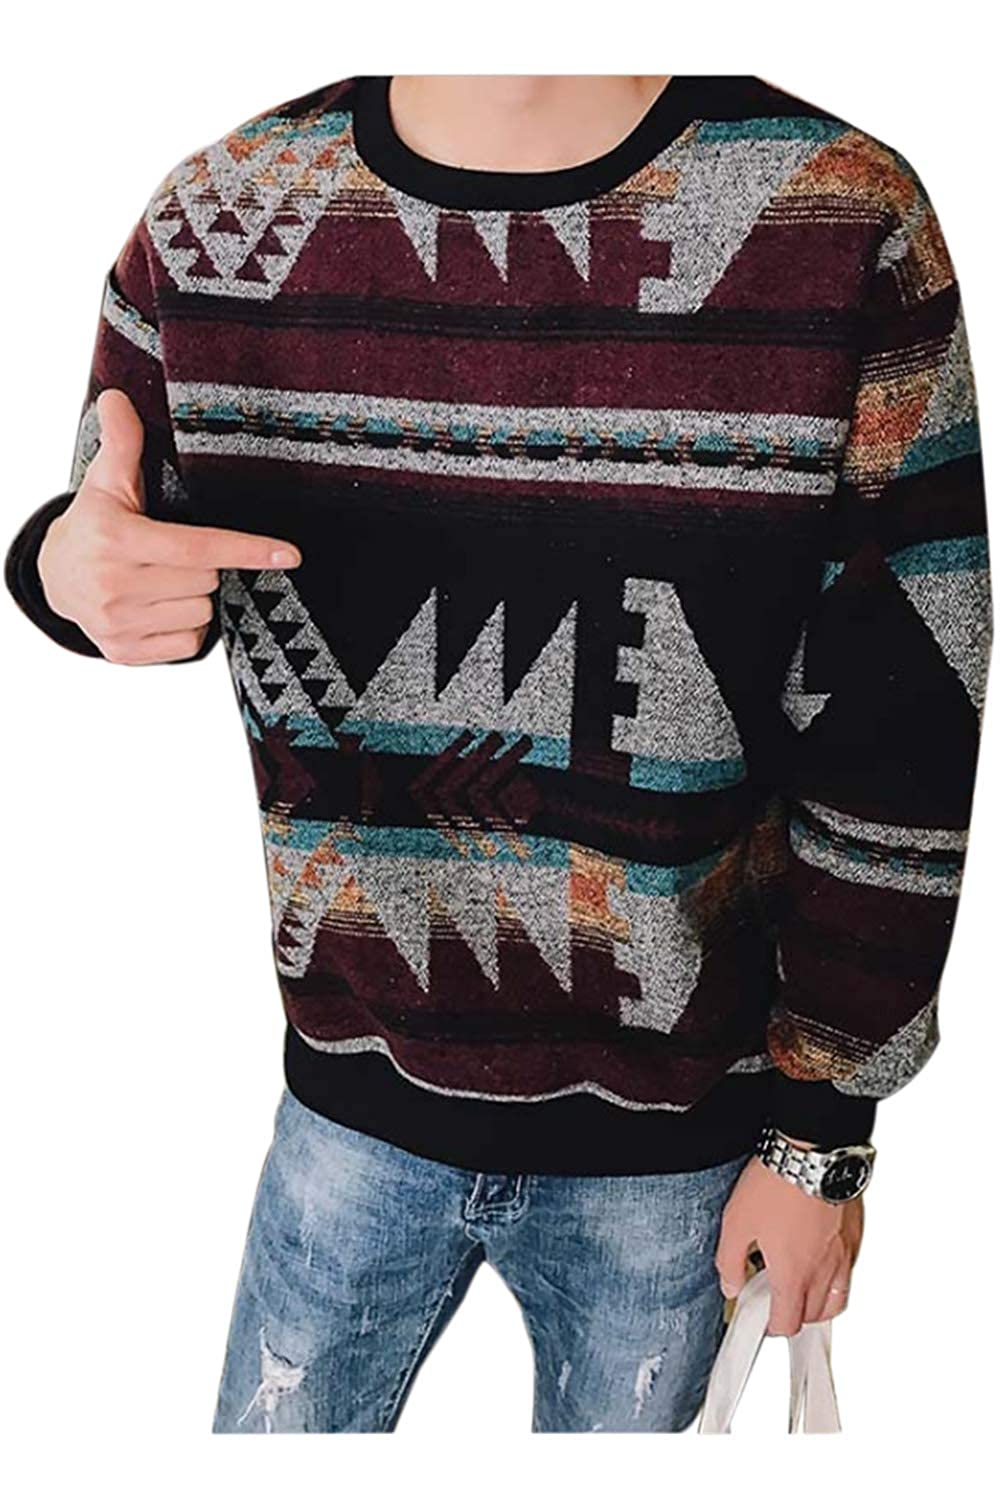 Zonsaoja Sweaters for Men Floral Jumper Knitted Pullover Casual